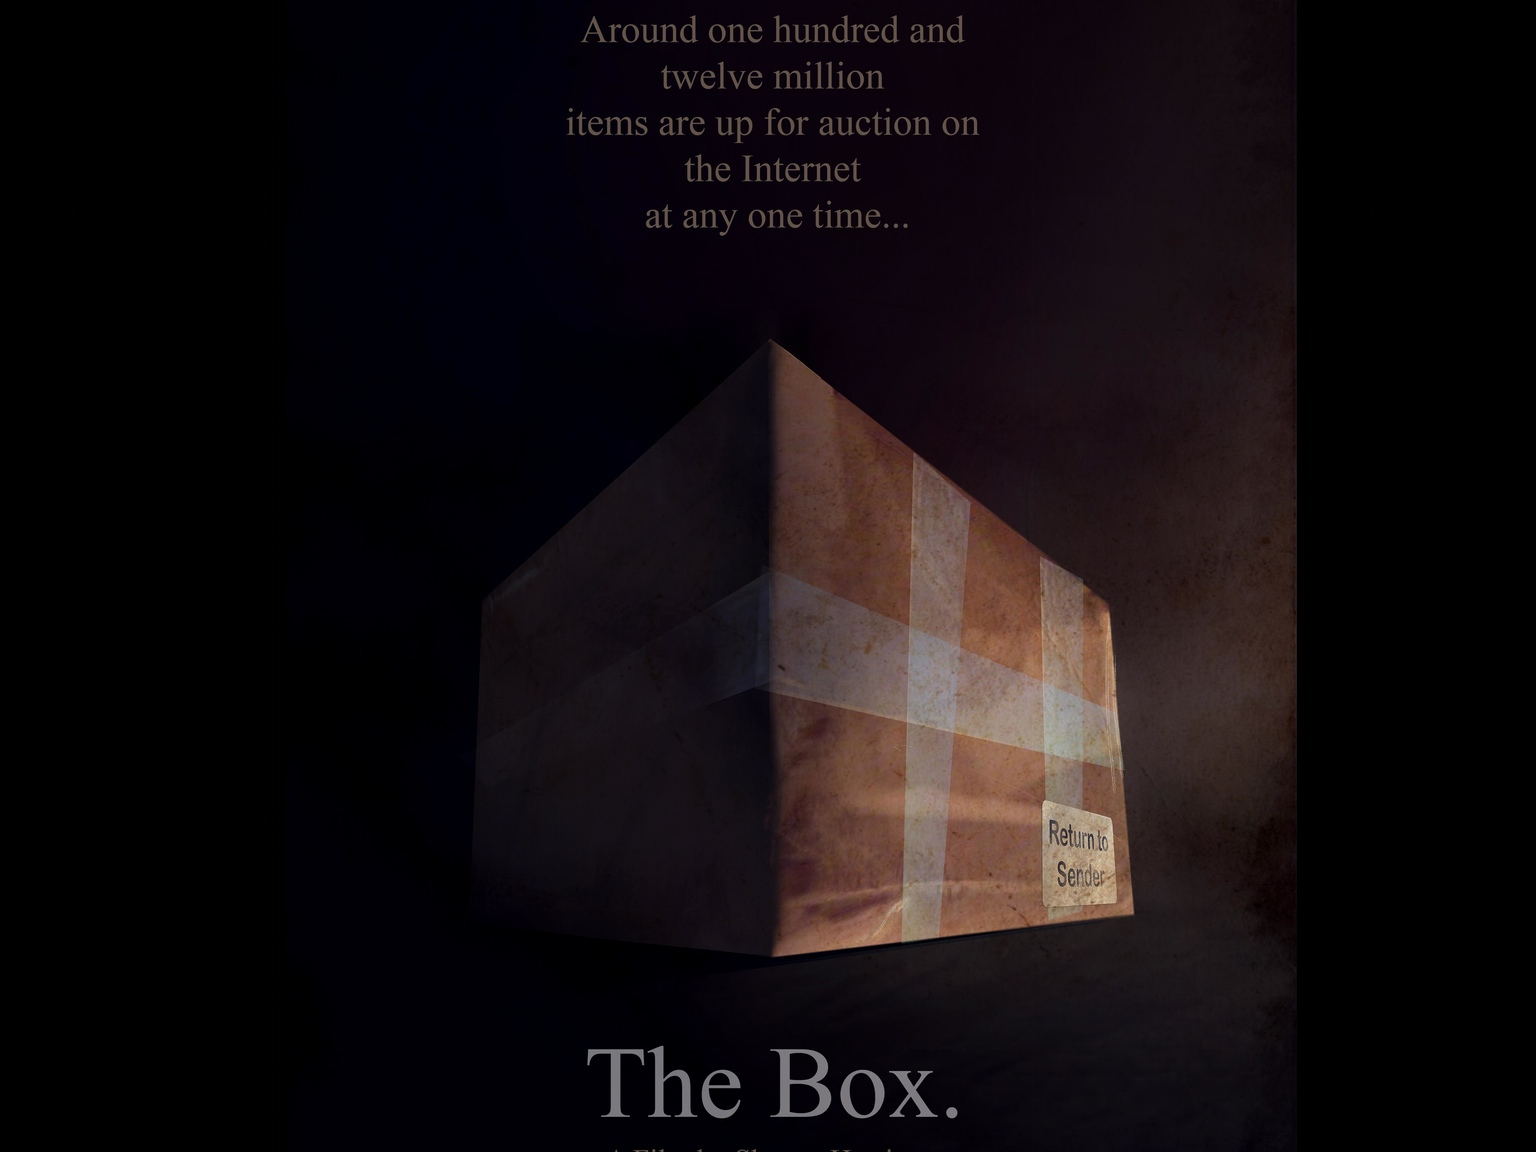 The Box – Interview with Shaune Harrison, Carl Whiteley & Dominic Brunt